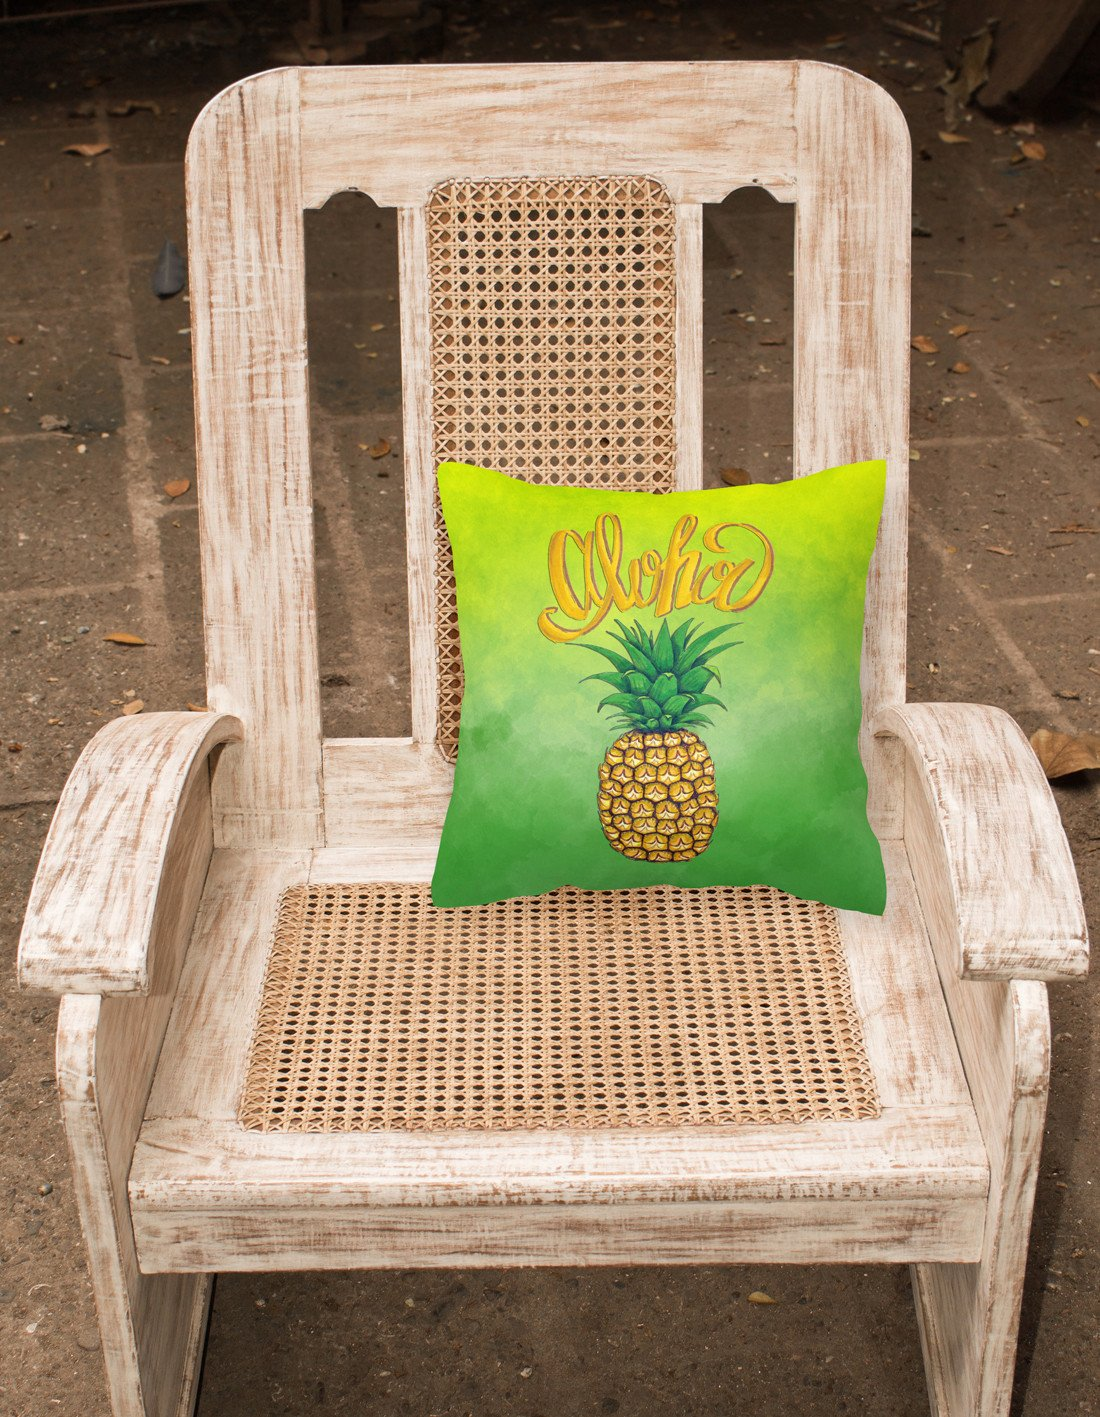 Aloha Pineapple Welcome Fabric Decorative Pillow BB7451PW1818 by Caroline's Treasures